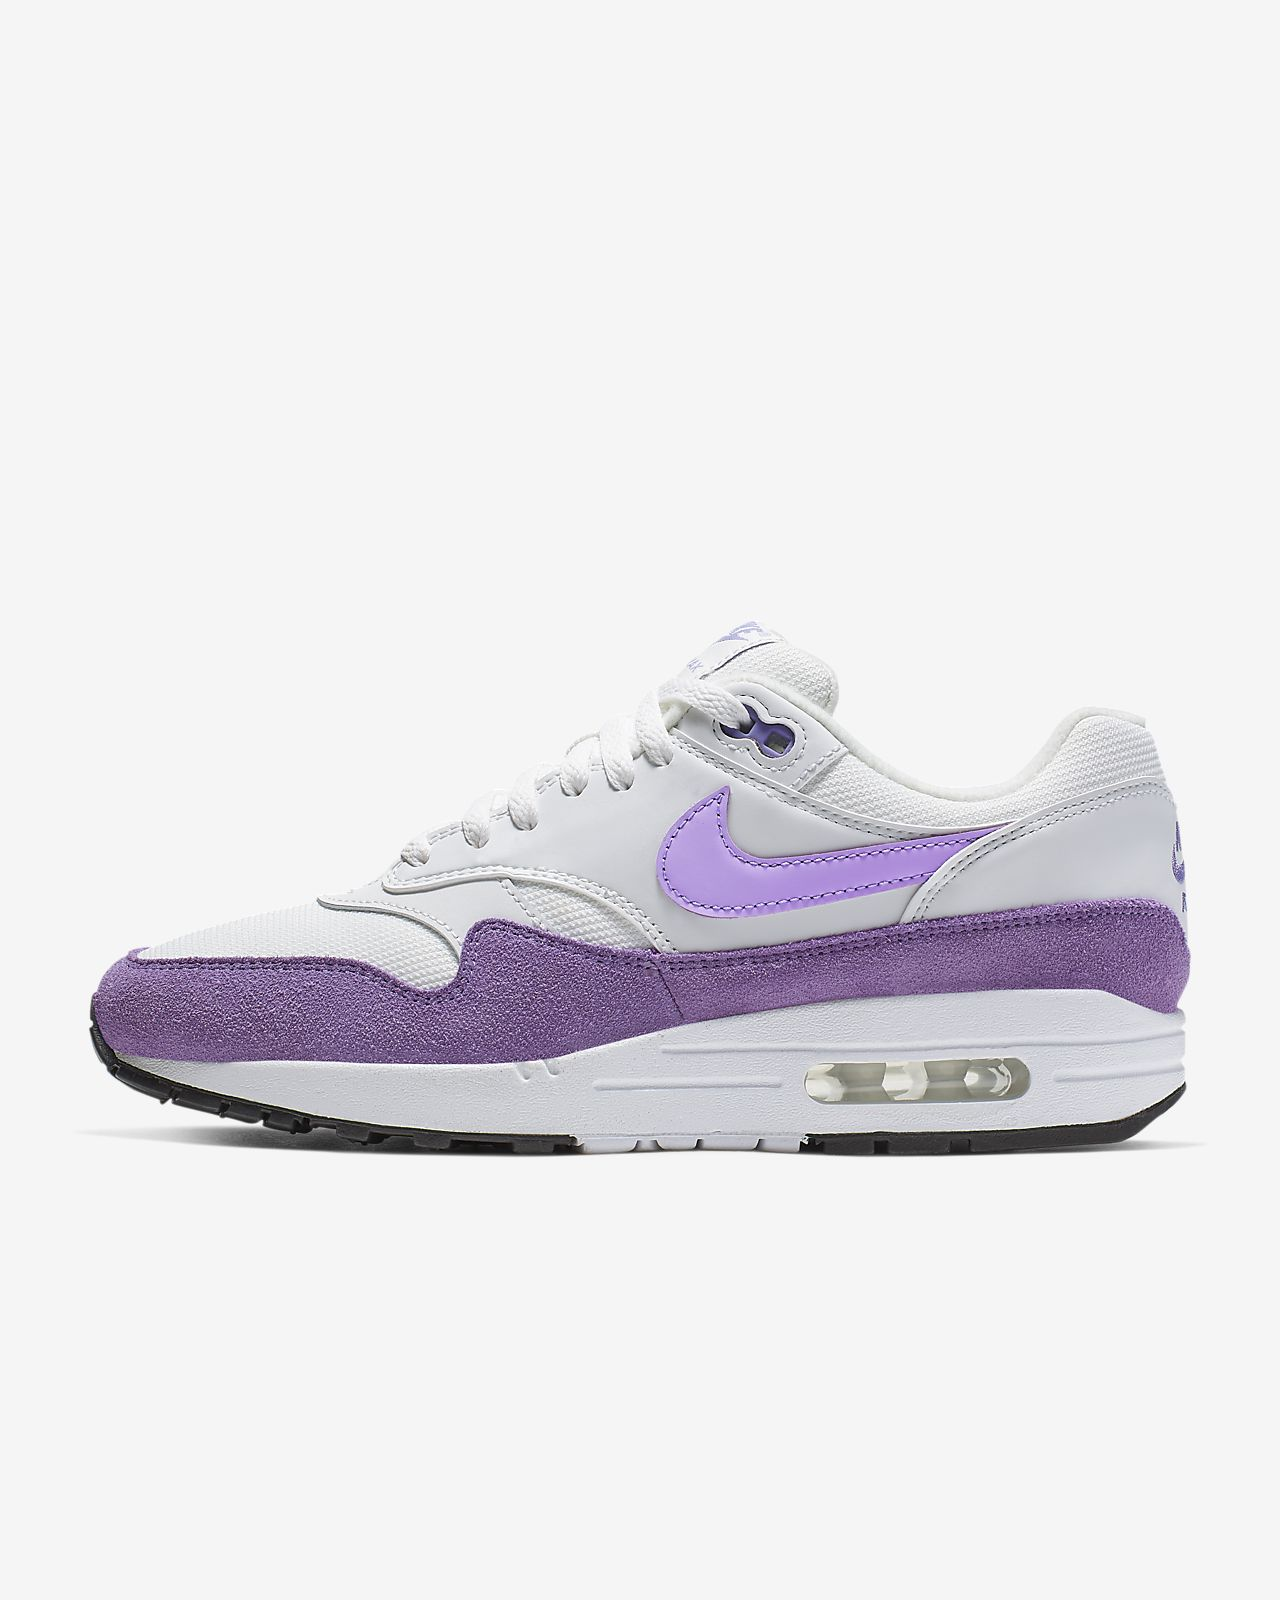 new product ea9fc 7dd53 ... Nike Air Max 1 Women s Shoe